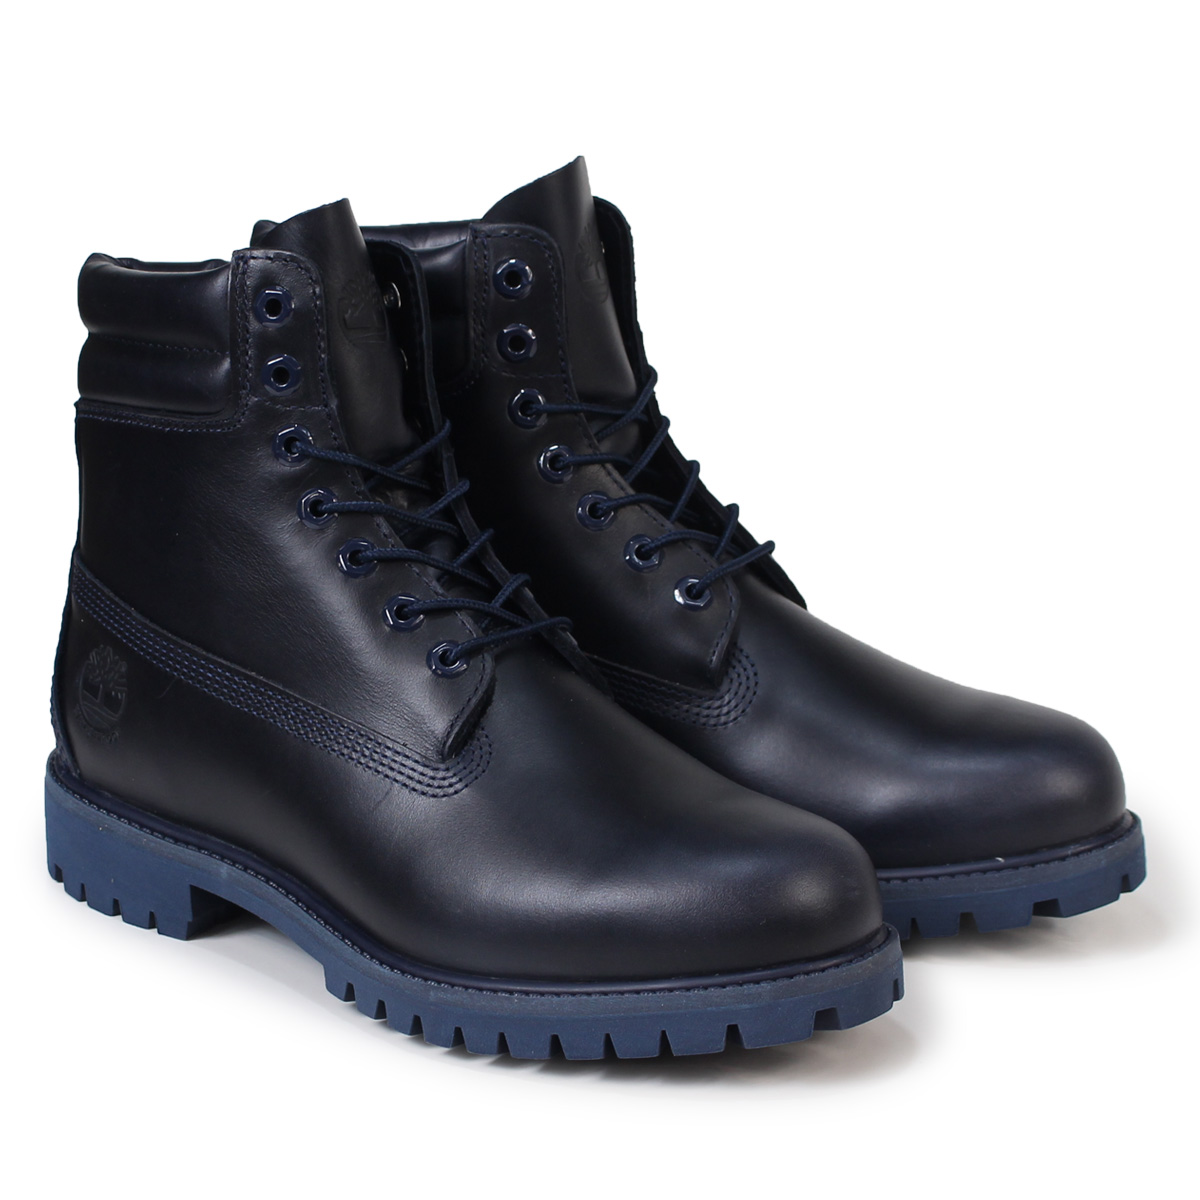 6 inches of Timberland 6INCH DOUBLE COLLAR BOOT Timberland boots men A1HCJ W Wise waterproofing navies [925 Shinnyu load]